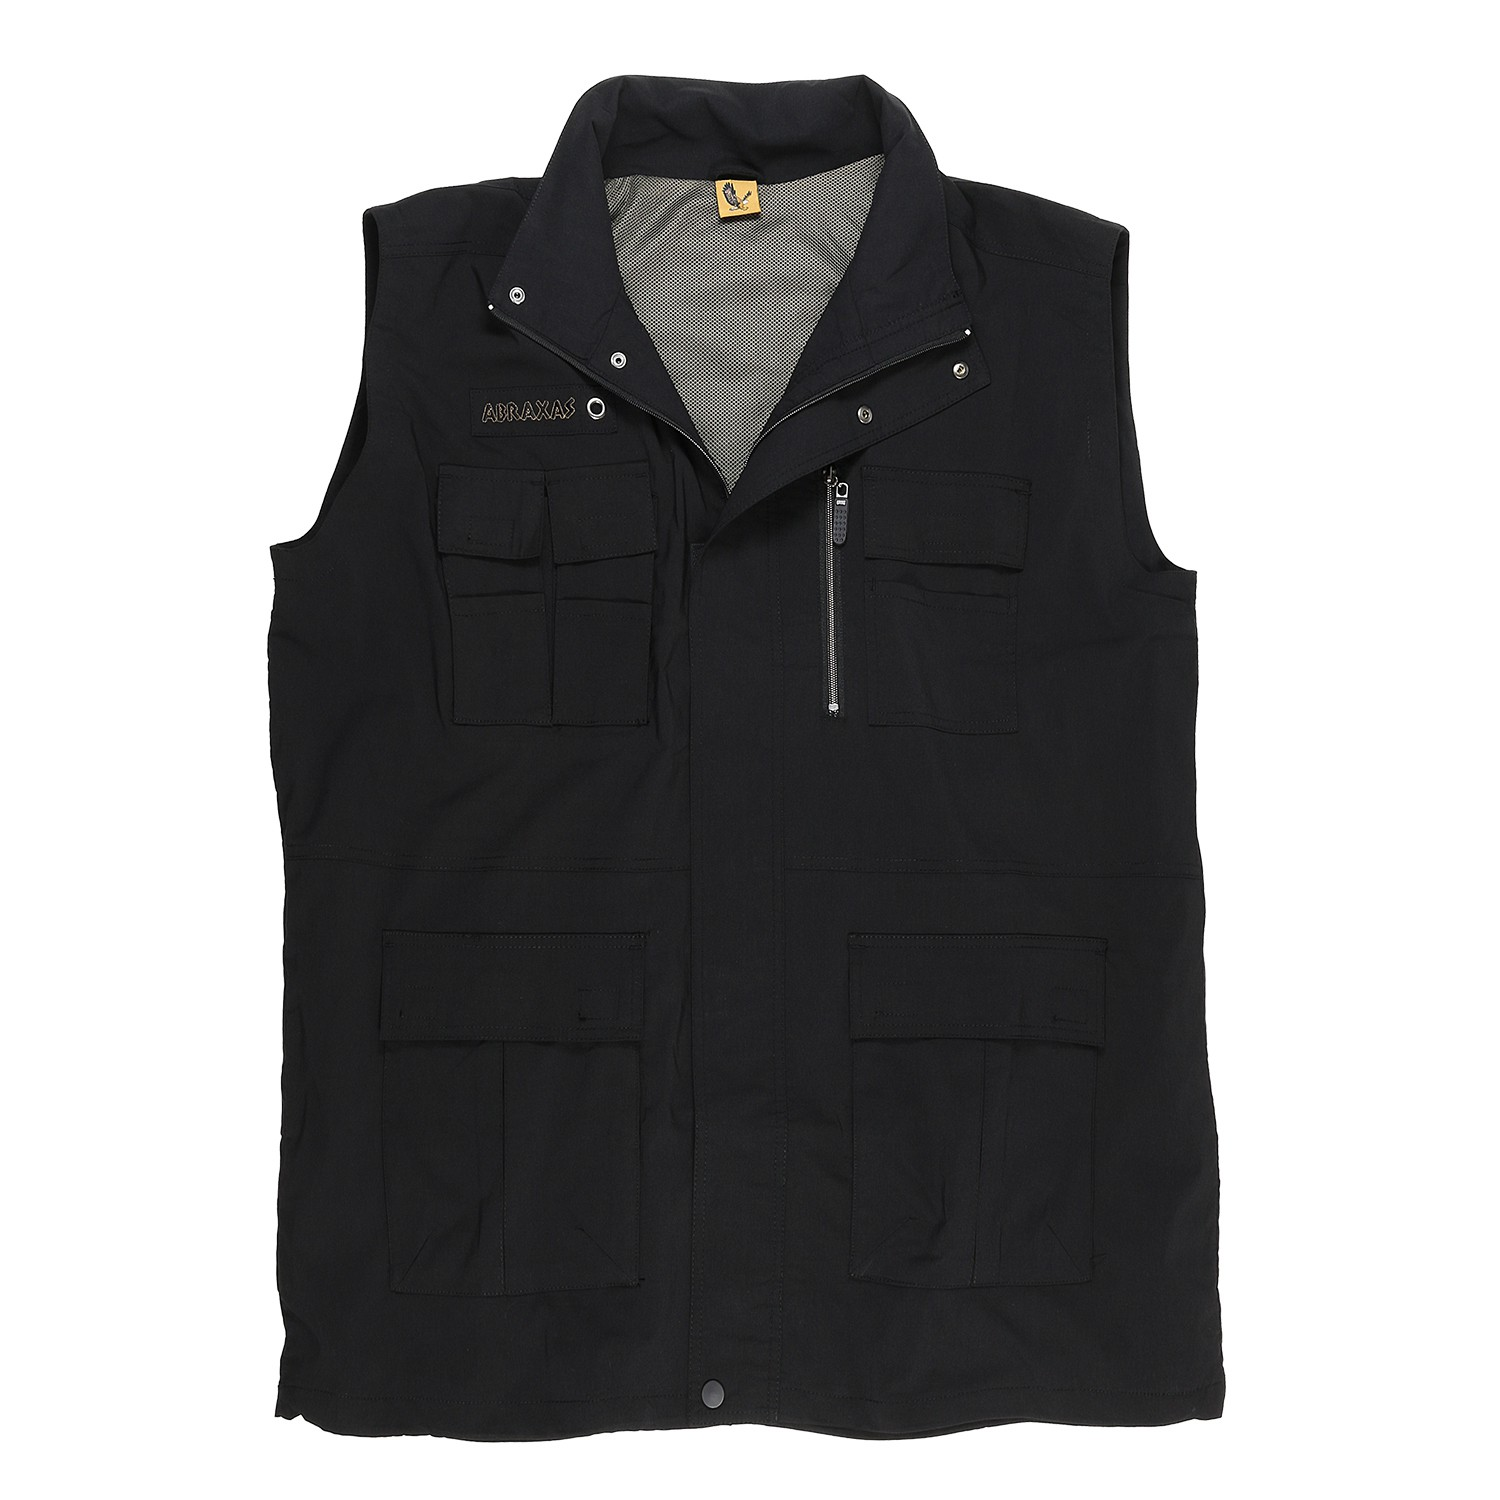 Detail Image to Black outdoor vest by Abraxas in oversizes up to 10XL